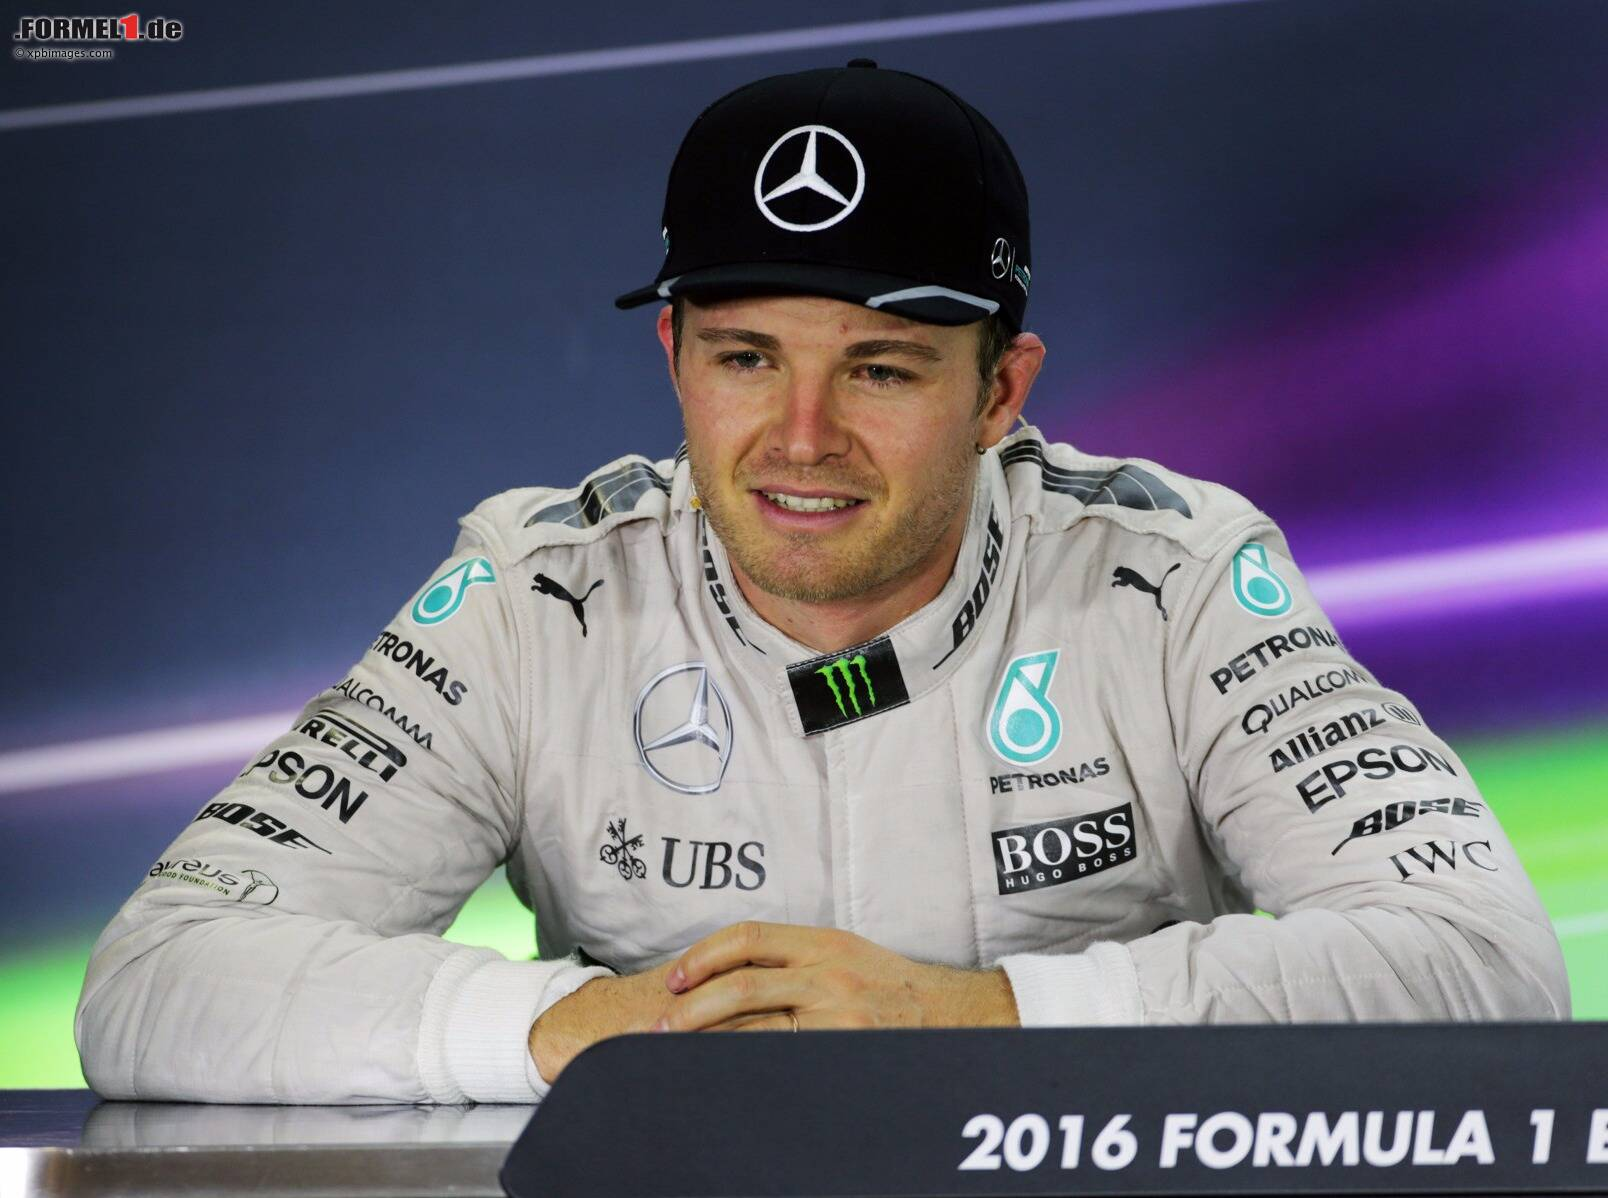 nico rosberg karriere als formel 1 fahrermanager denkbar. Black Bedroom Furniture Sets. Home Design Ideas